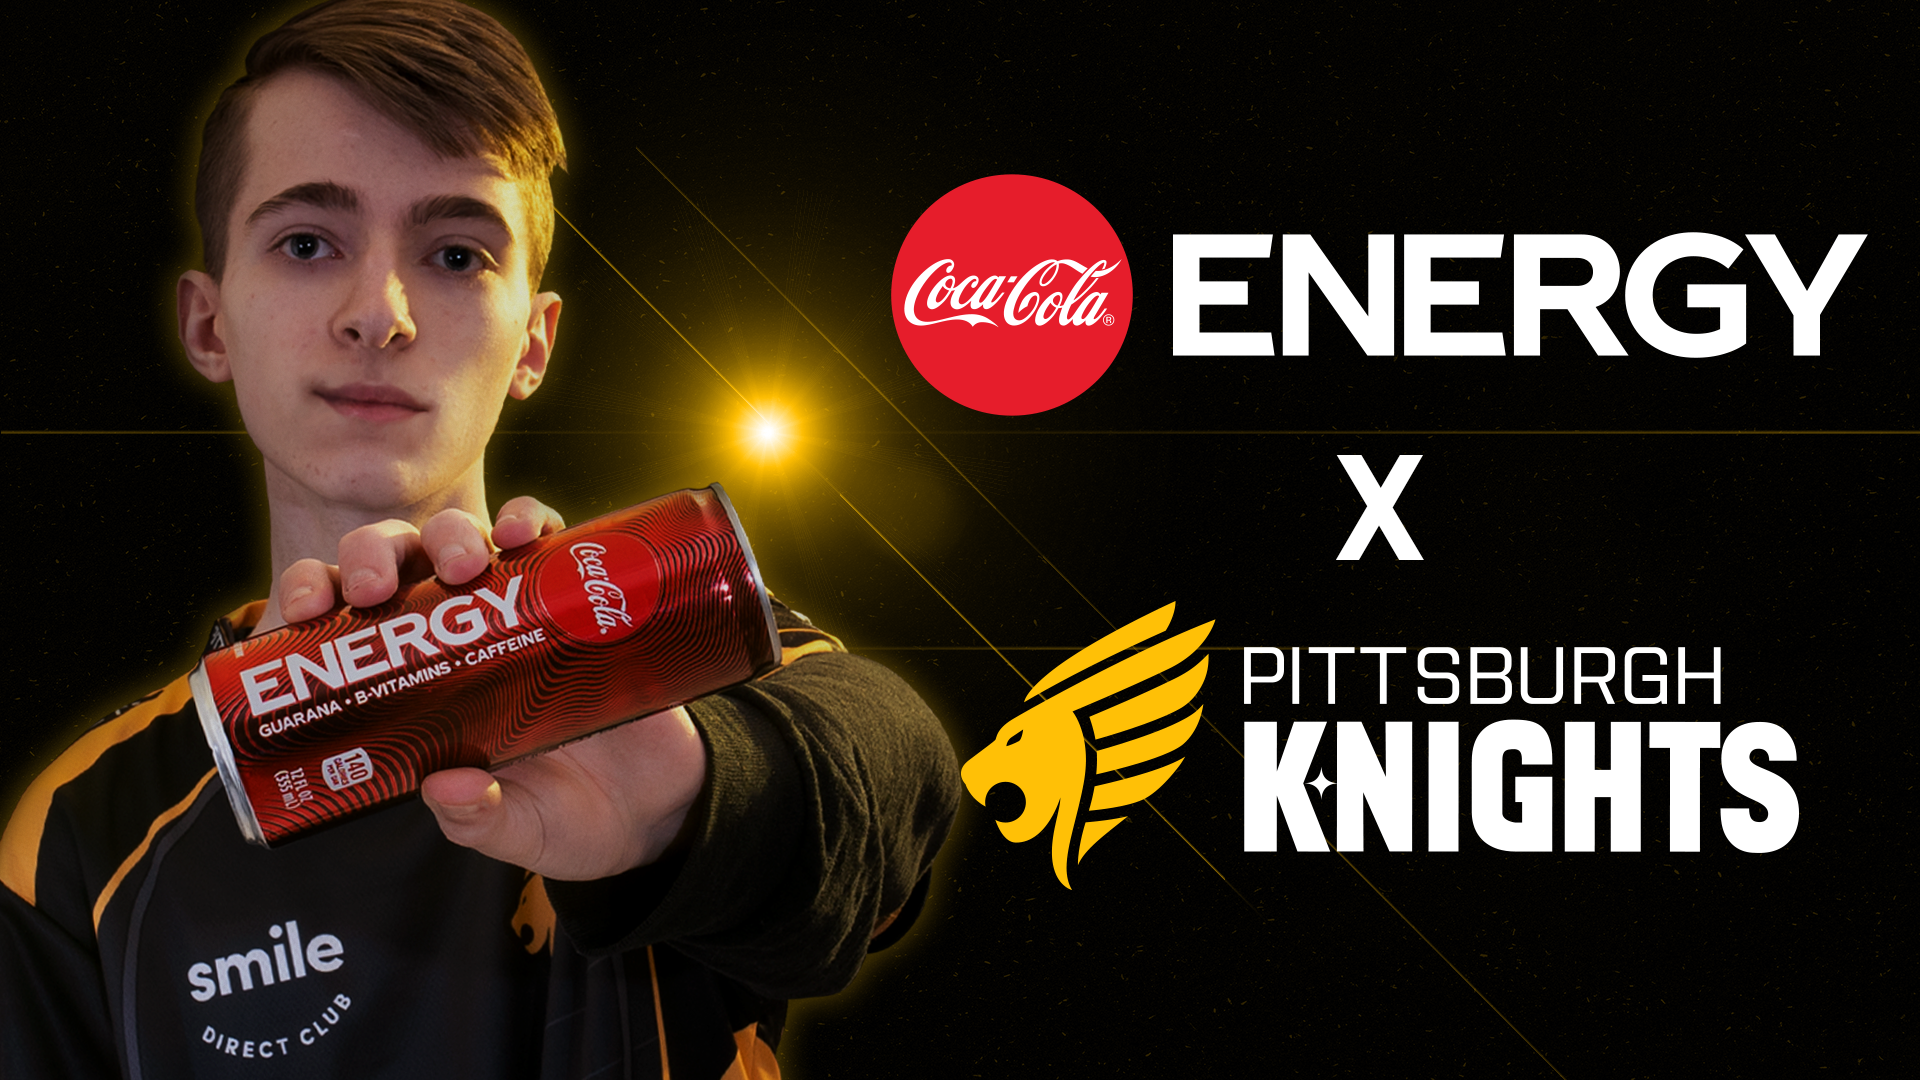 Pittsburgh Knights agree partnership with Coke Energy